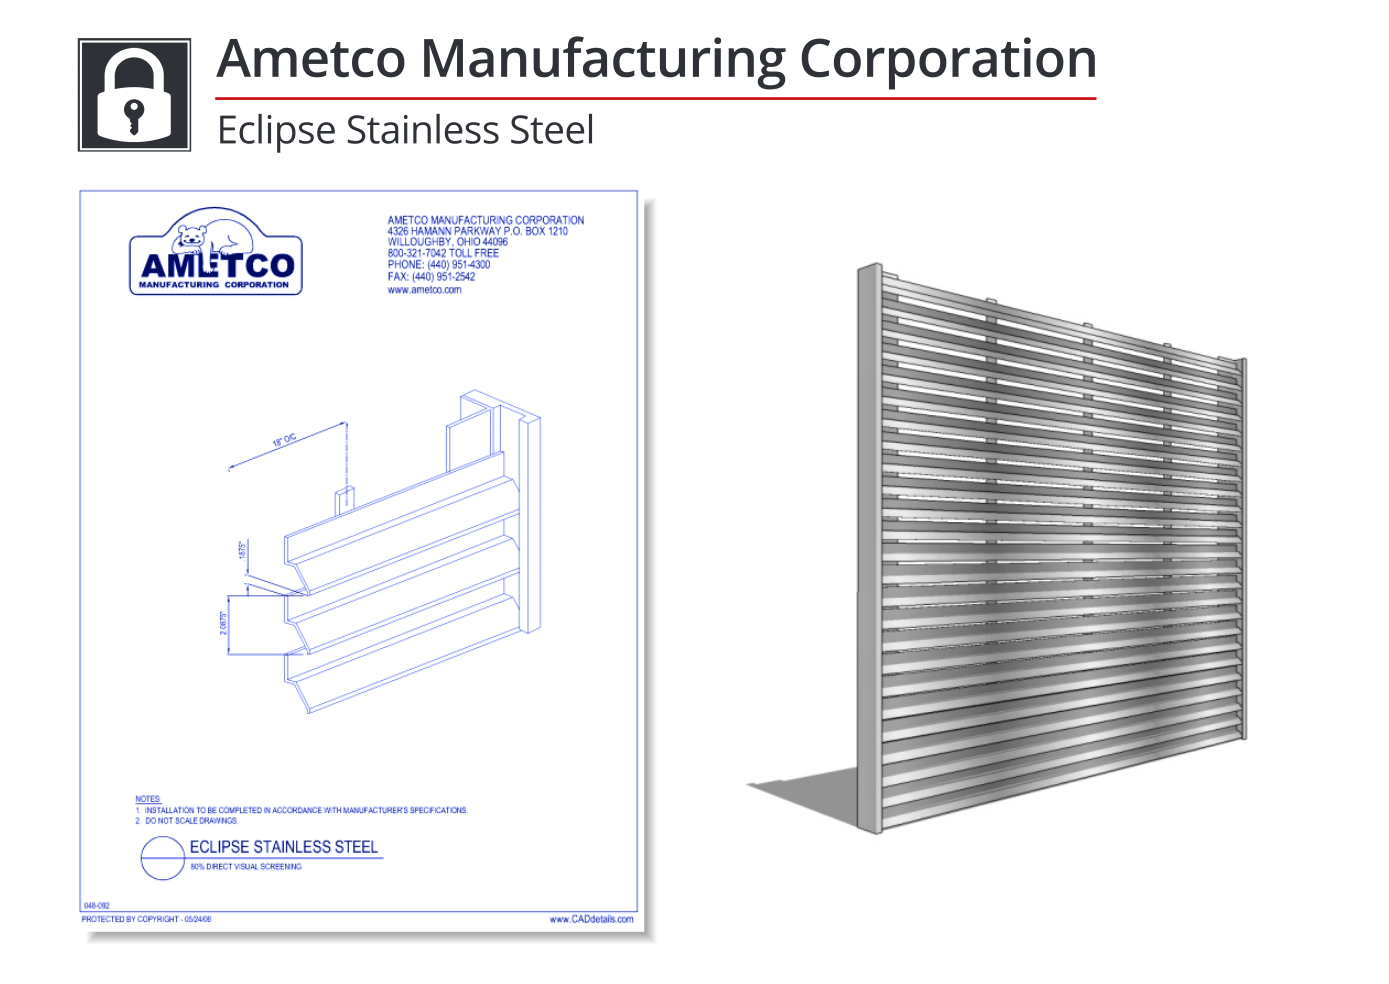 Ametco-Manufacturing-Corporation-Exlipse-Stainless-Steel-CADdrawing.png